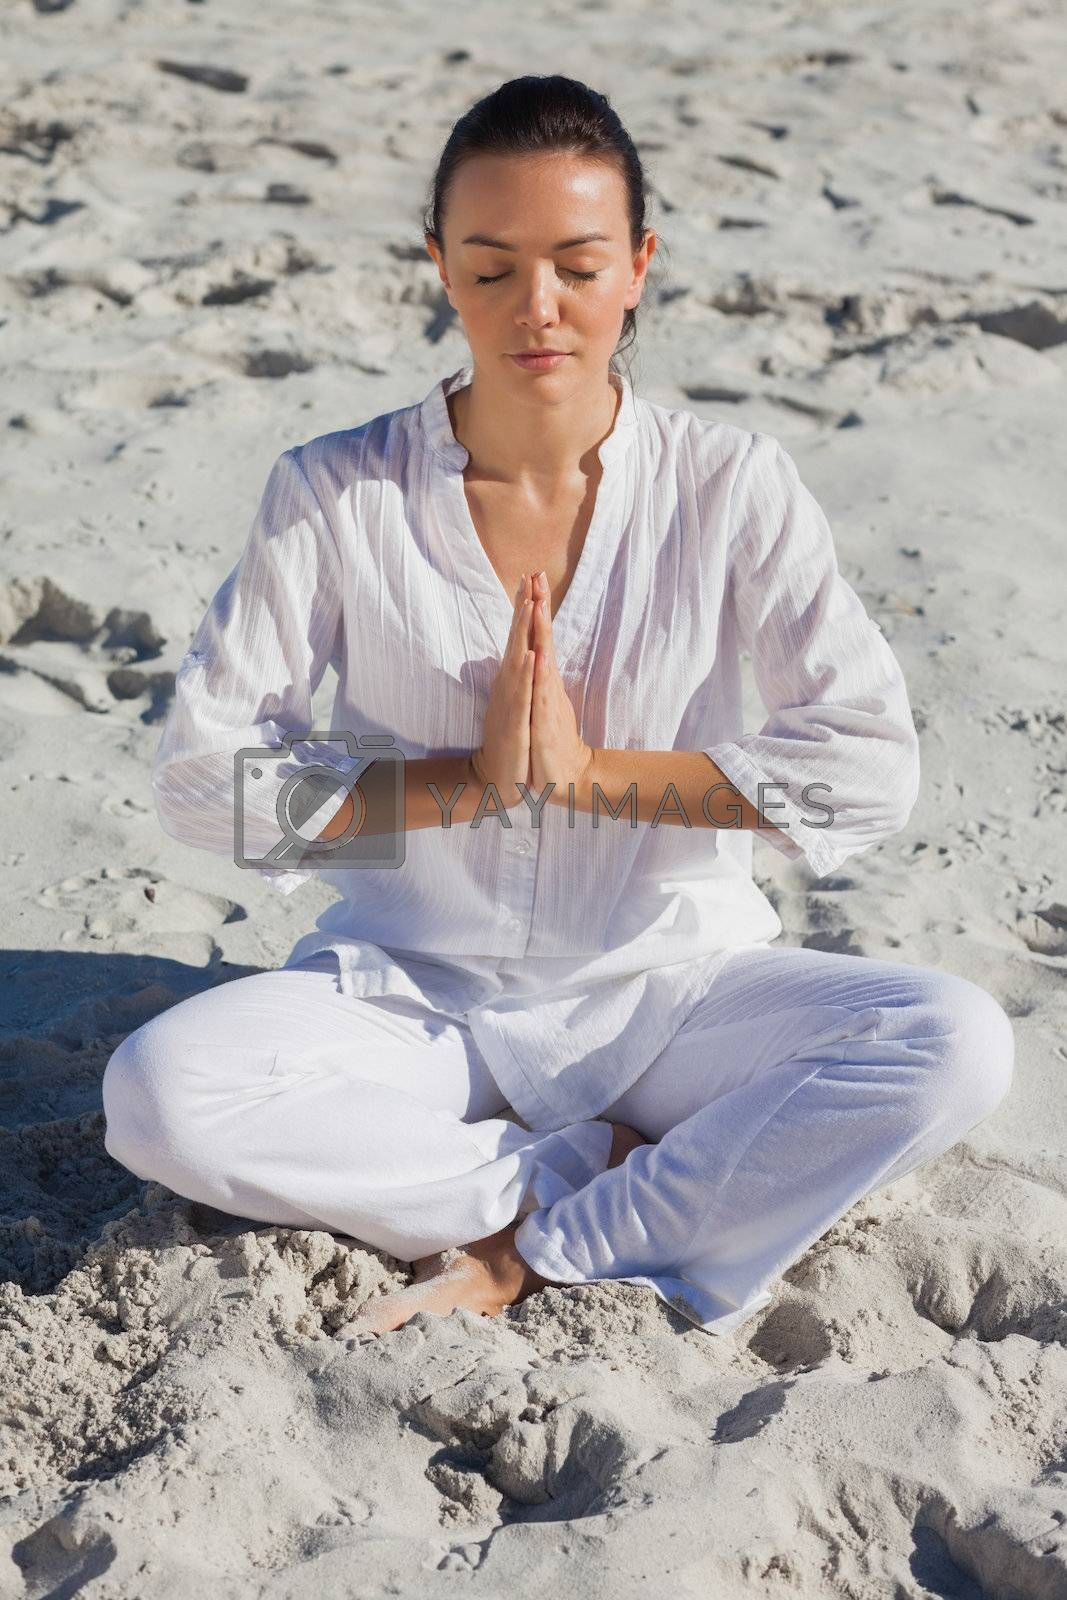 Concentrated woman practicing yoga on the beach  by Wavebreakmedia